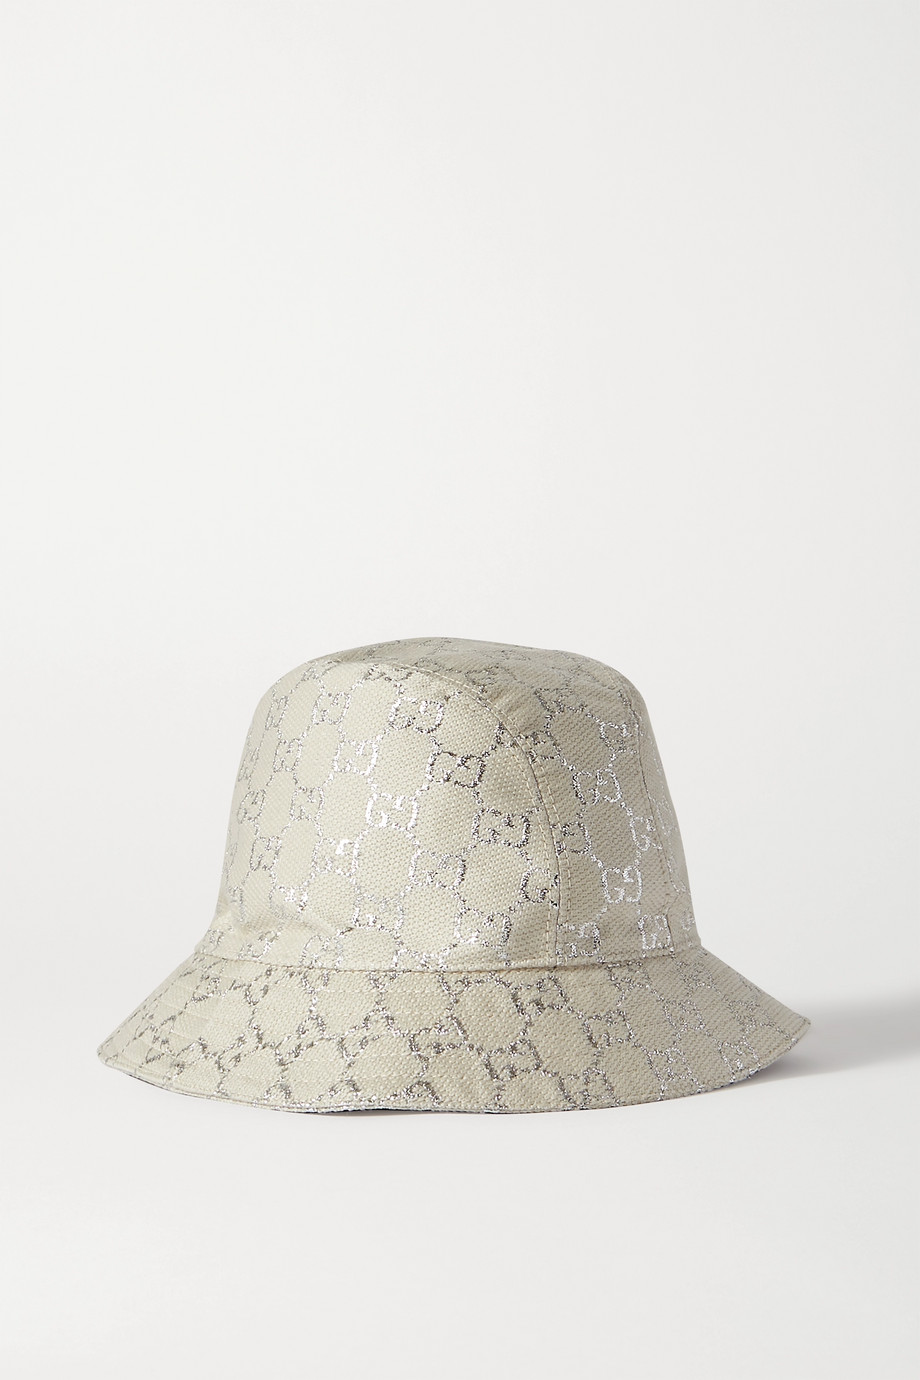 Gucci Metallic wool-blend jacquard bucket hat